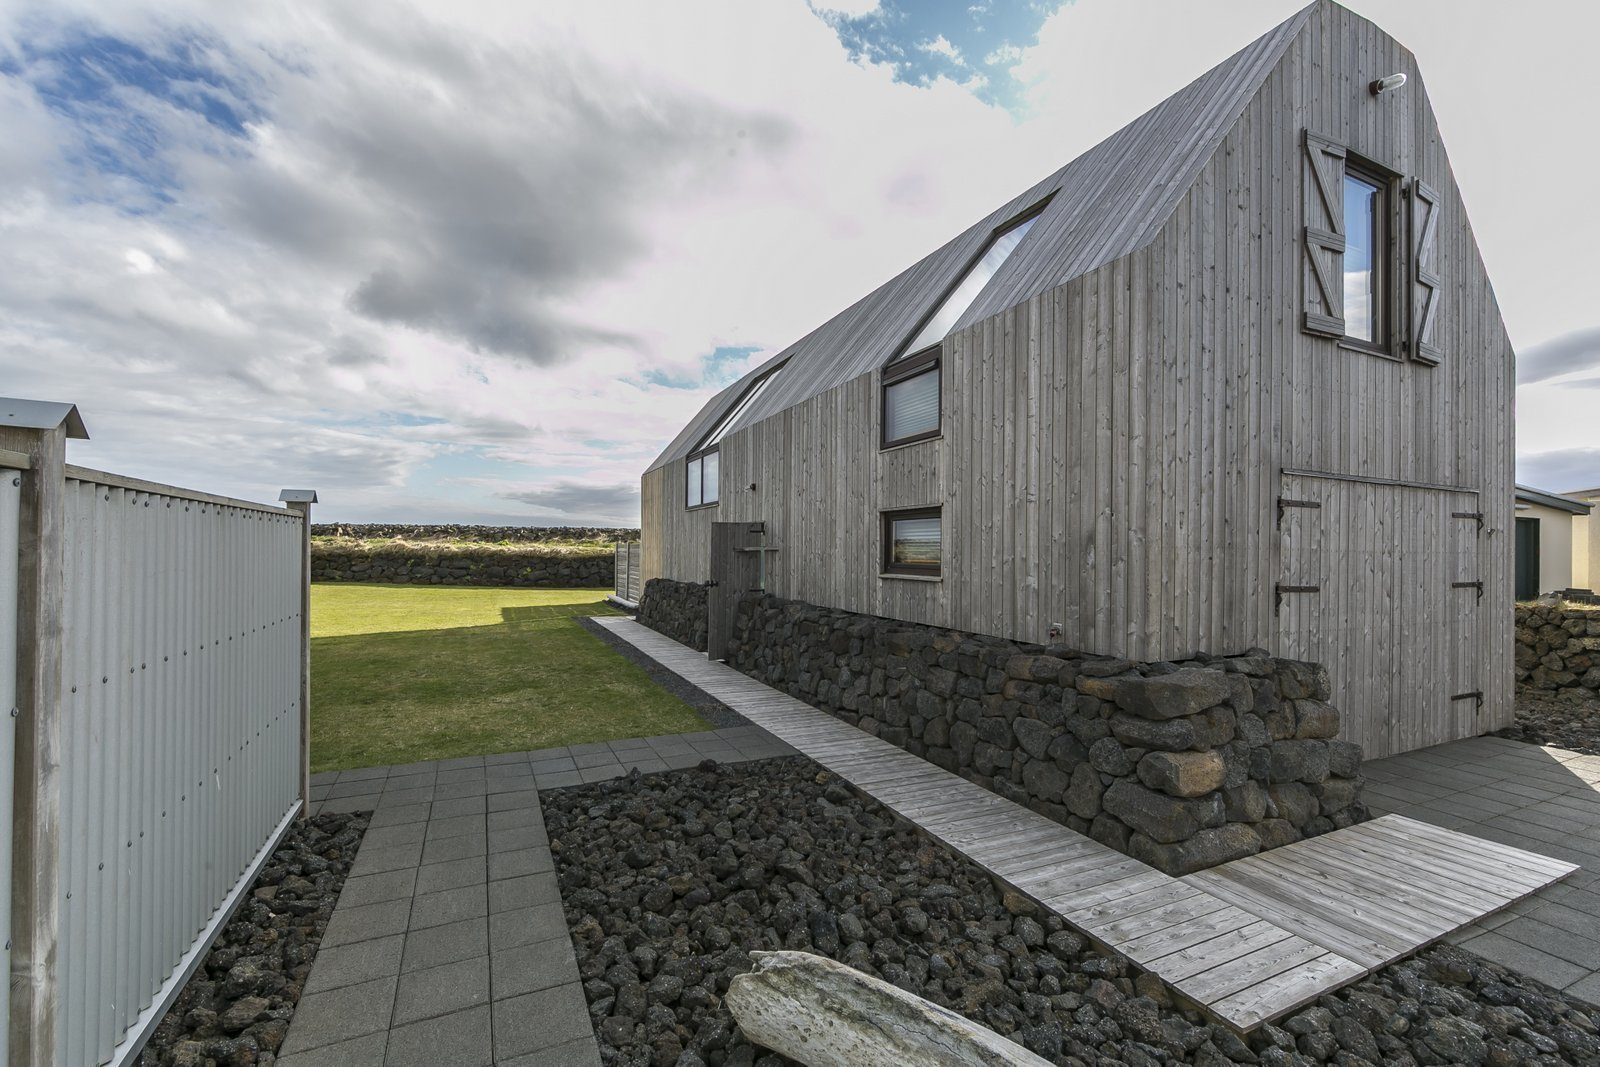 Photo 1 of 12 in Get in Touch With Iceland's Rugged Landscape While Staying at This Modern Coastal Barn